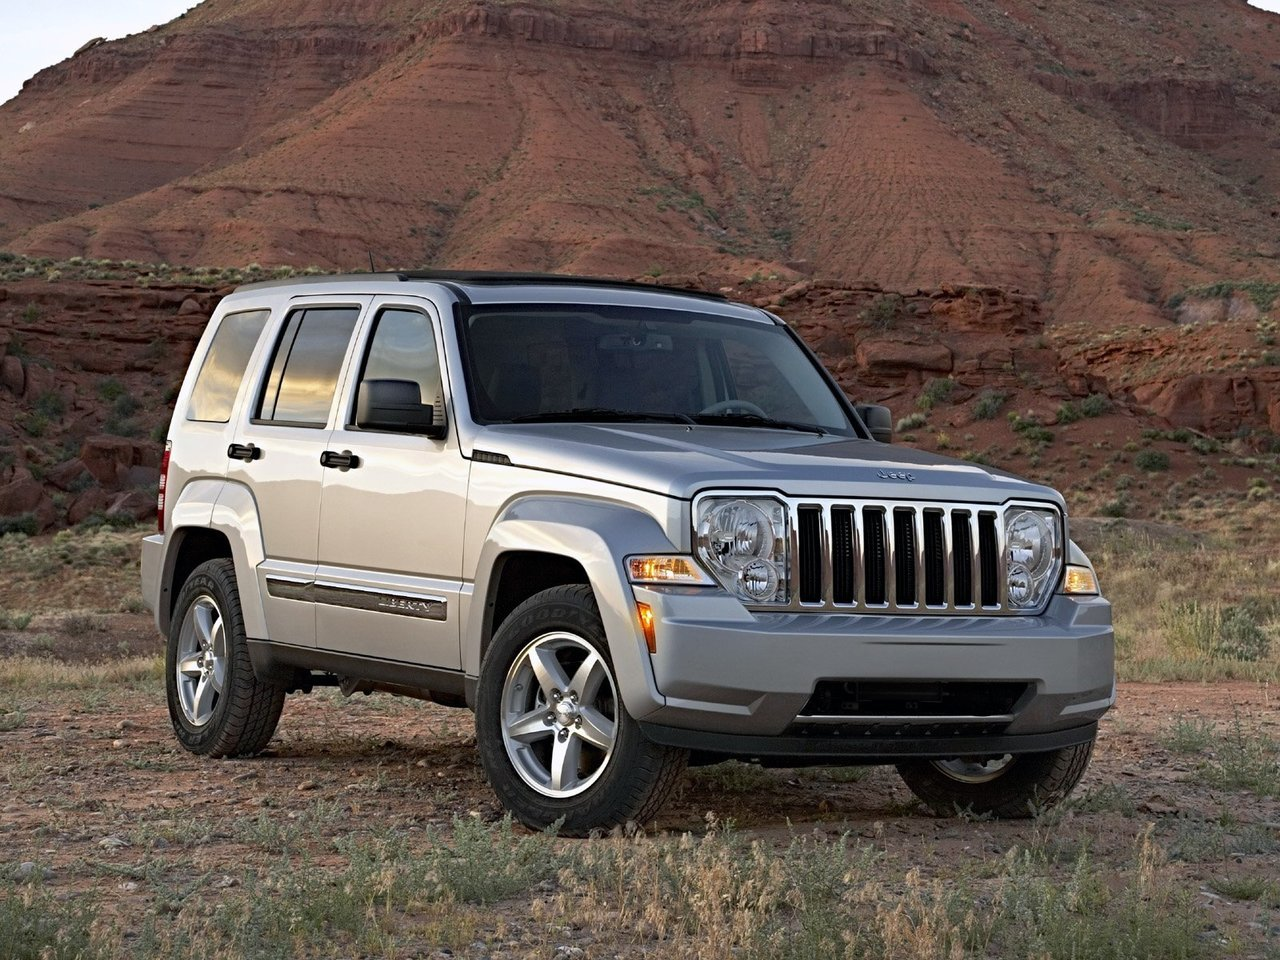 Jeep Liberty (North America) II